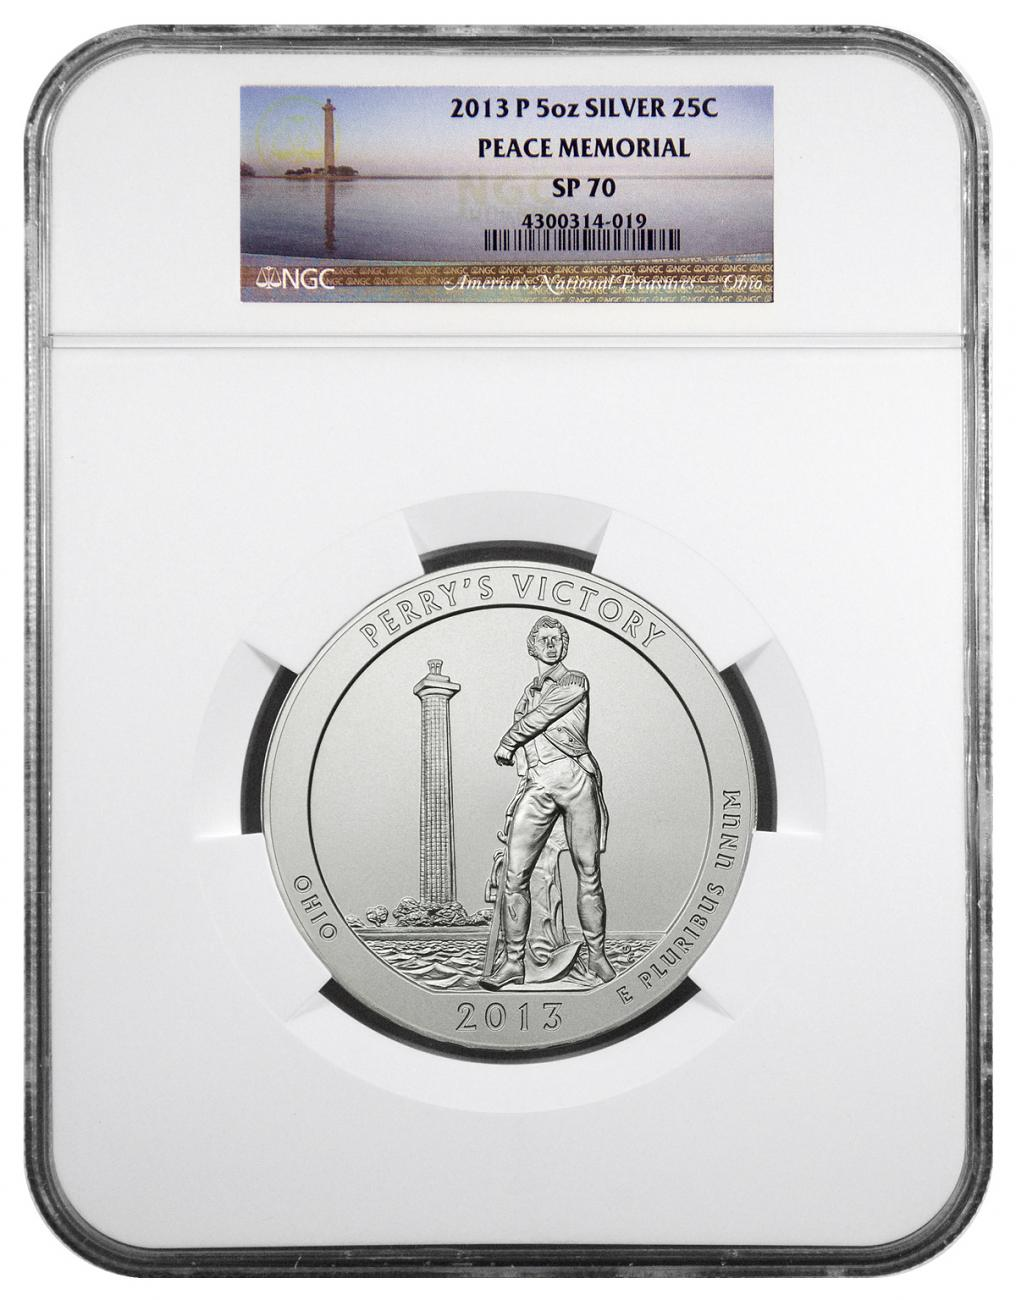 2013-P Perry's Victory 5 oz. Silver America the Beautiful Specimen Coin NGC SP70